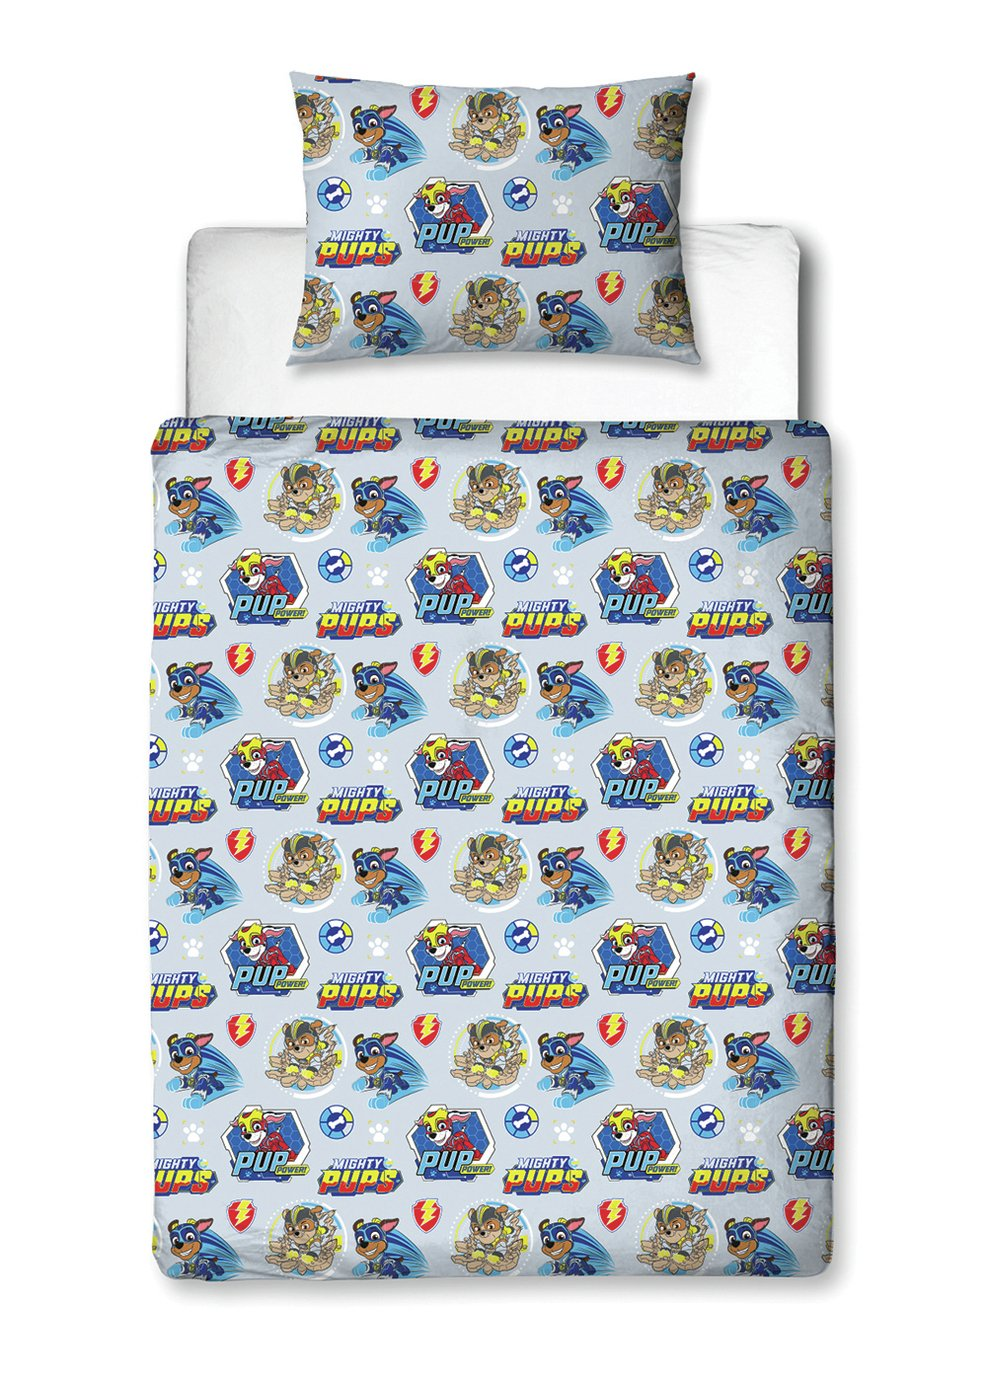 PAW Patrol Super Bedding Set - Toddler